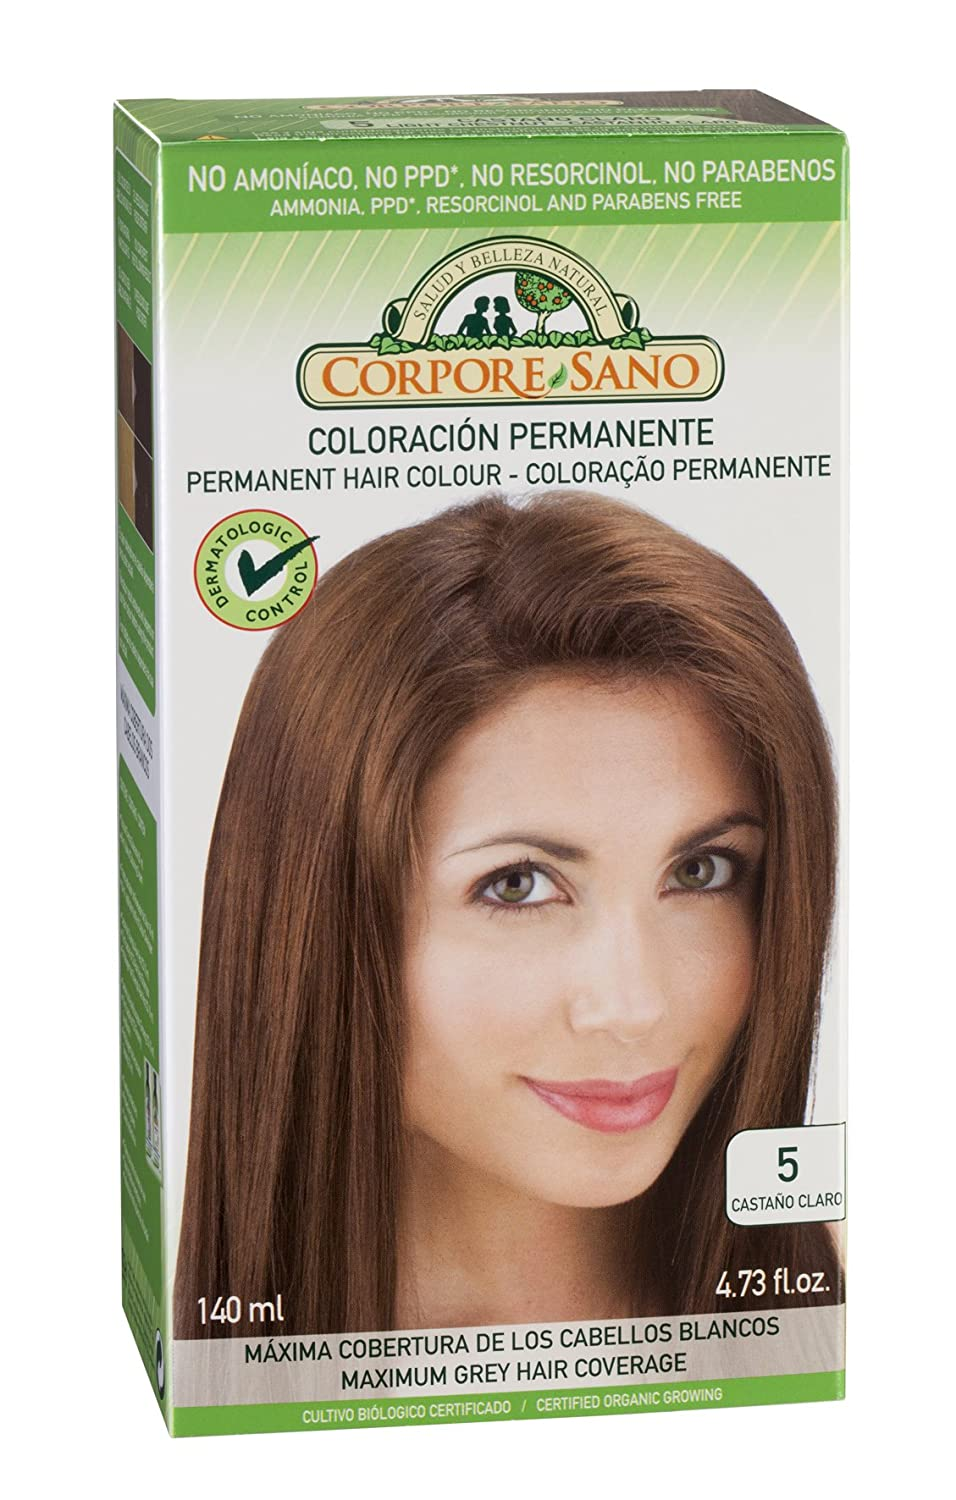 Amazoncom  Permanent Hair Colour Does Not Contain PPD AMMONIA